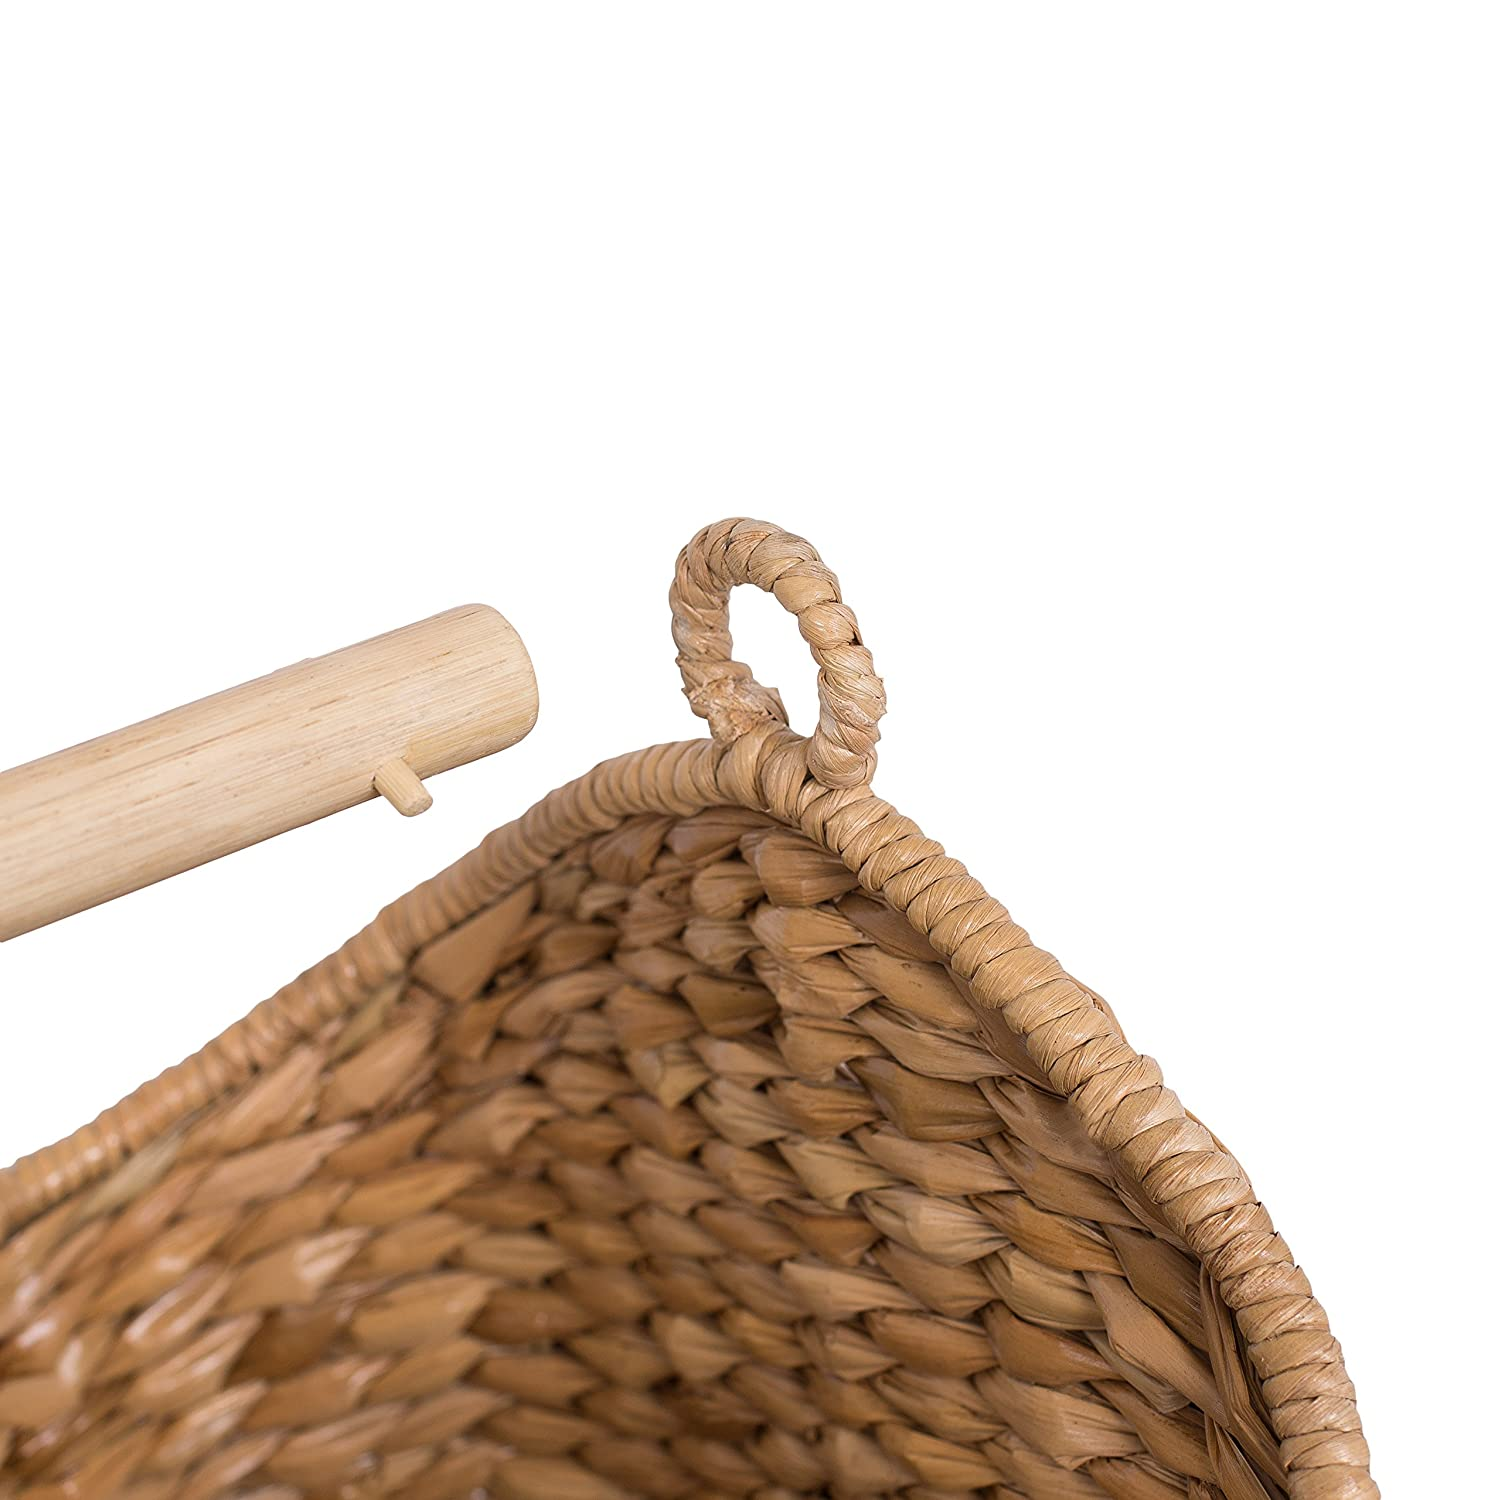 Amazon.com: BirdRock Home Seagrass Magazine and Bathroom Basket ...